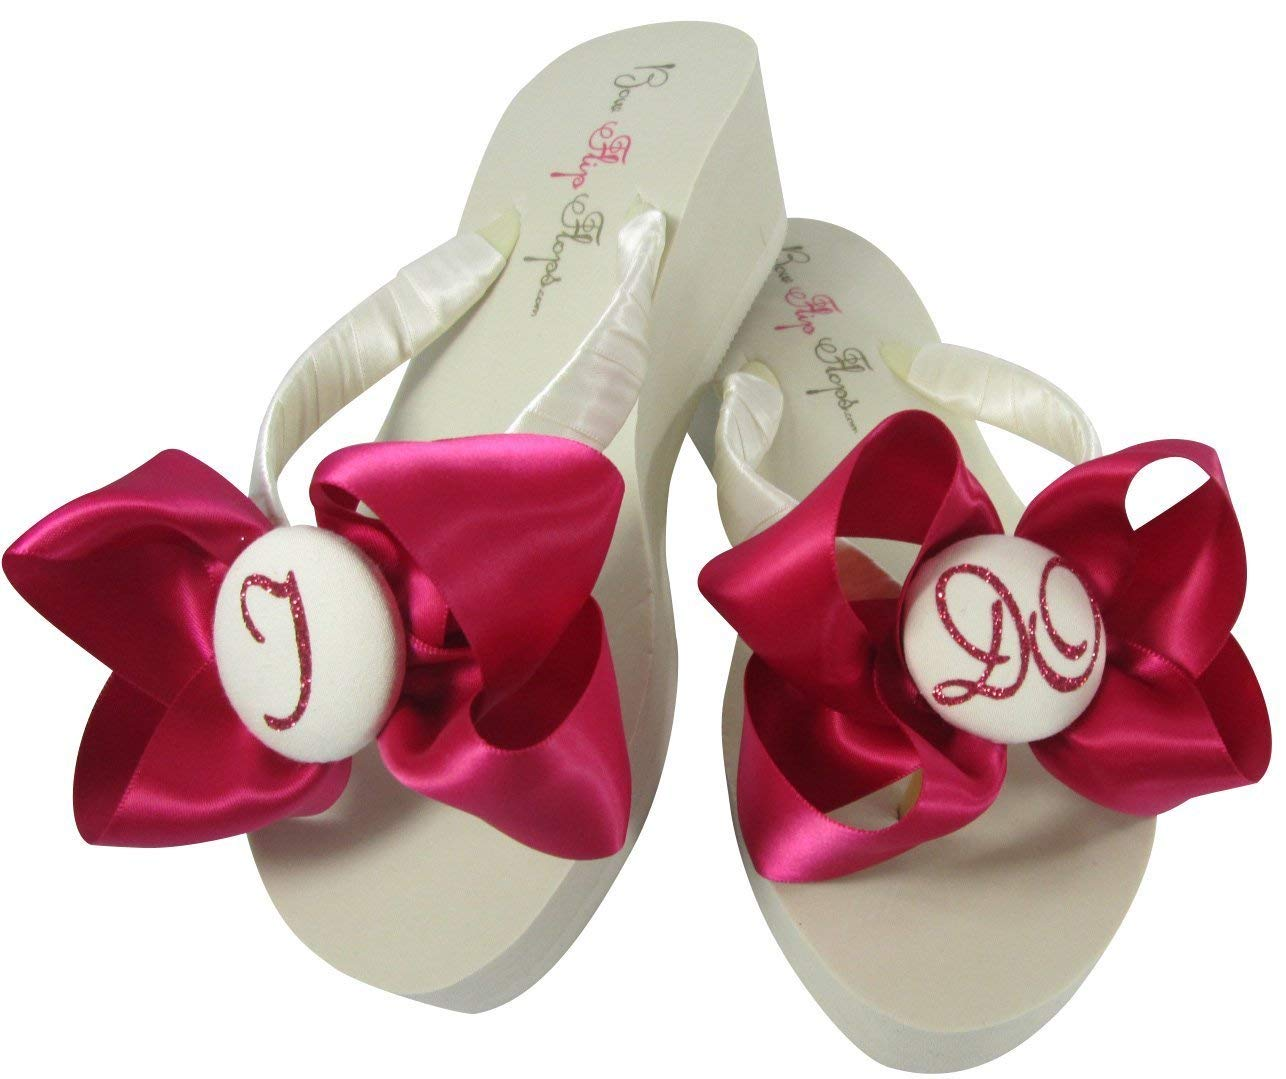 0ce2edc87 Get Quotations · Ivory I Do Flip Flops with Glitter Bows in 2 inch heel for  the Bride